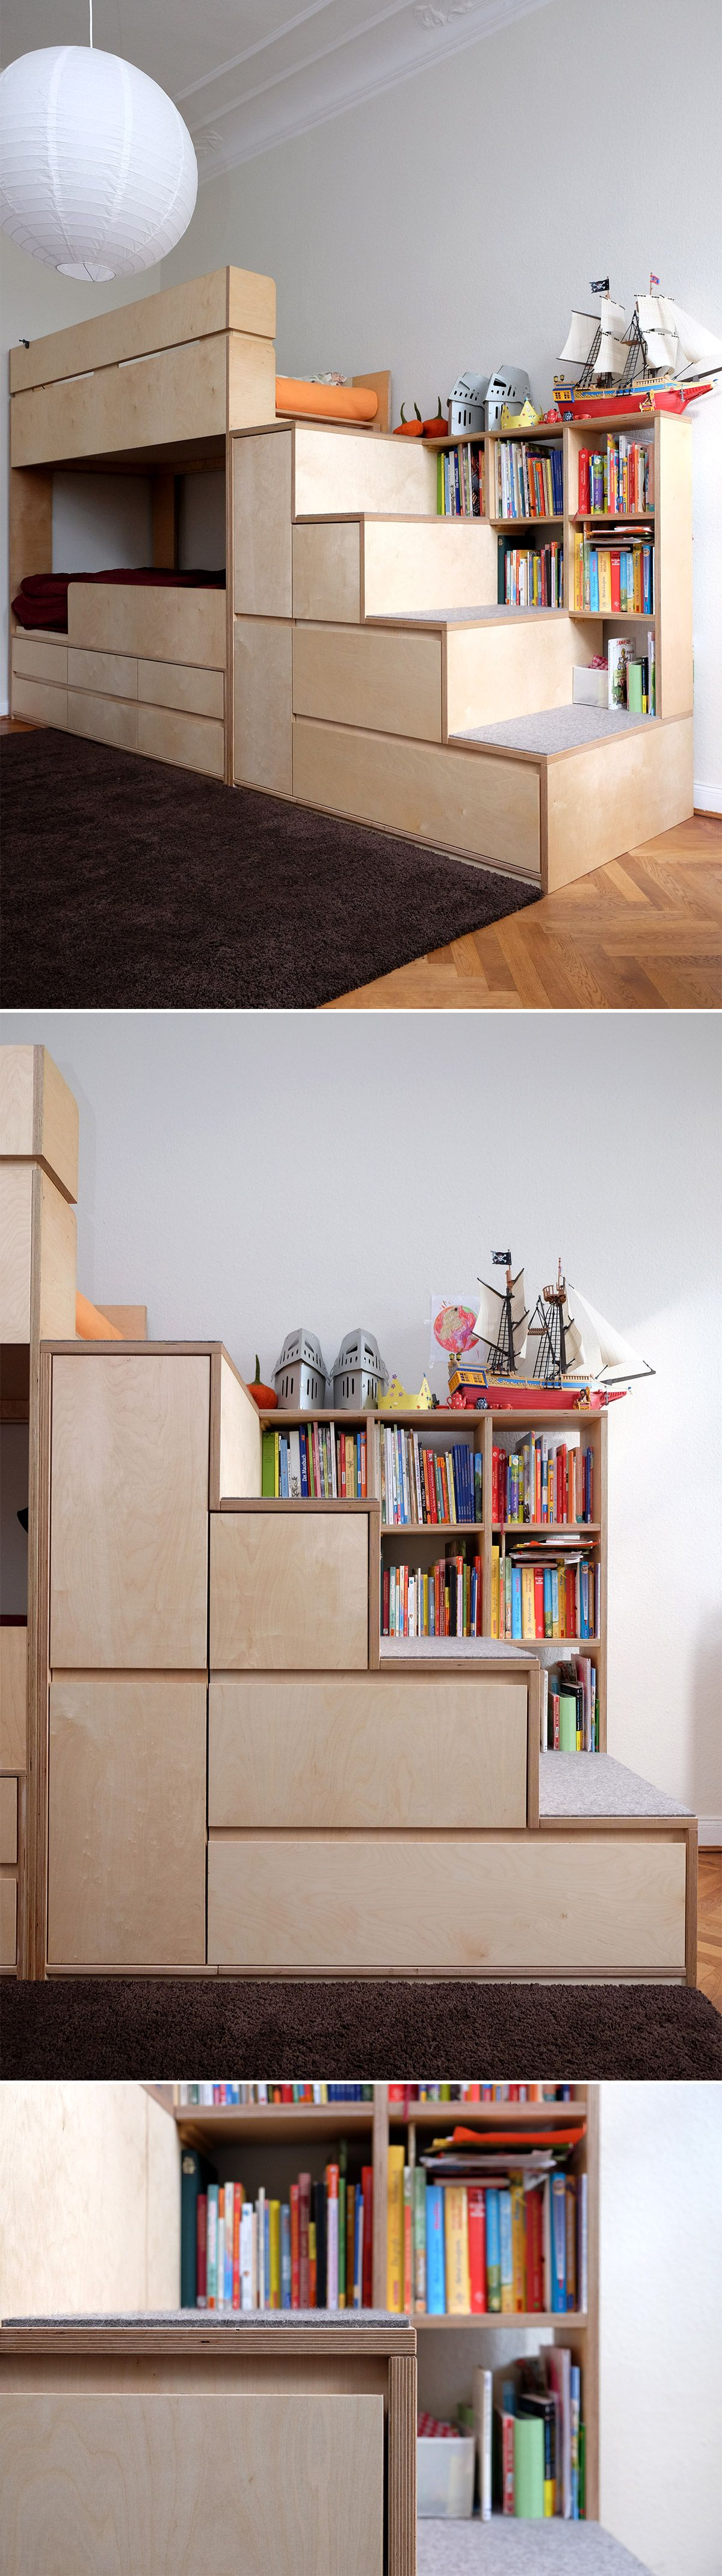 kinderzimmer etagenbett hochbett mit treppe und. Black Bedroom Furniture Sets. Home Design Ideas